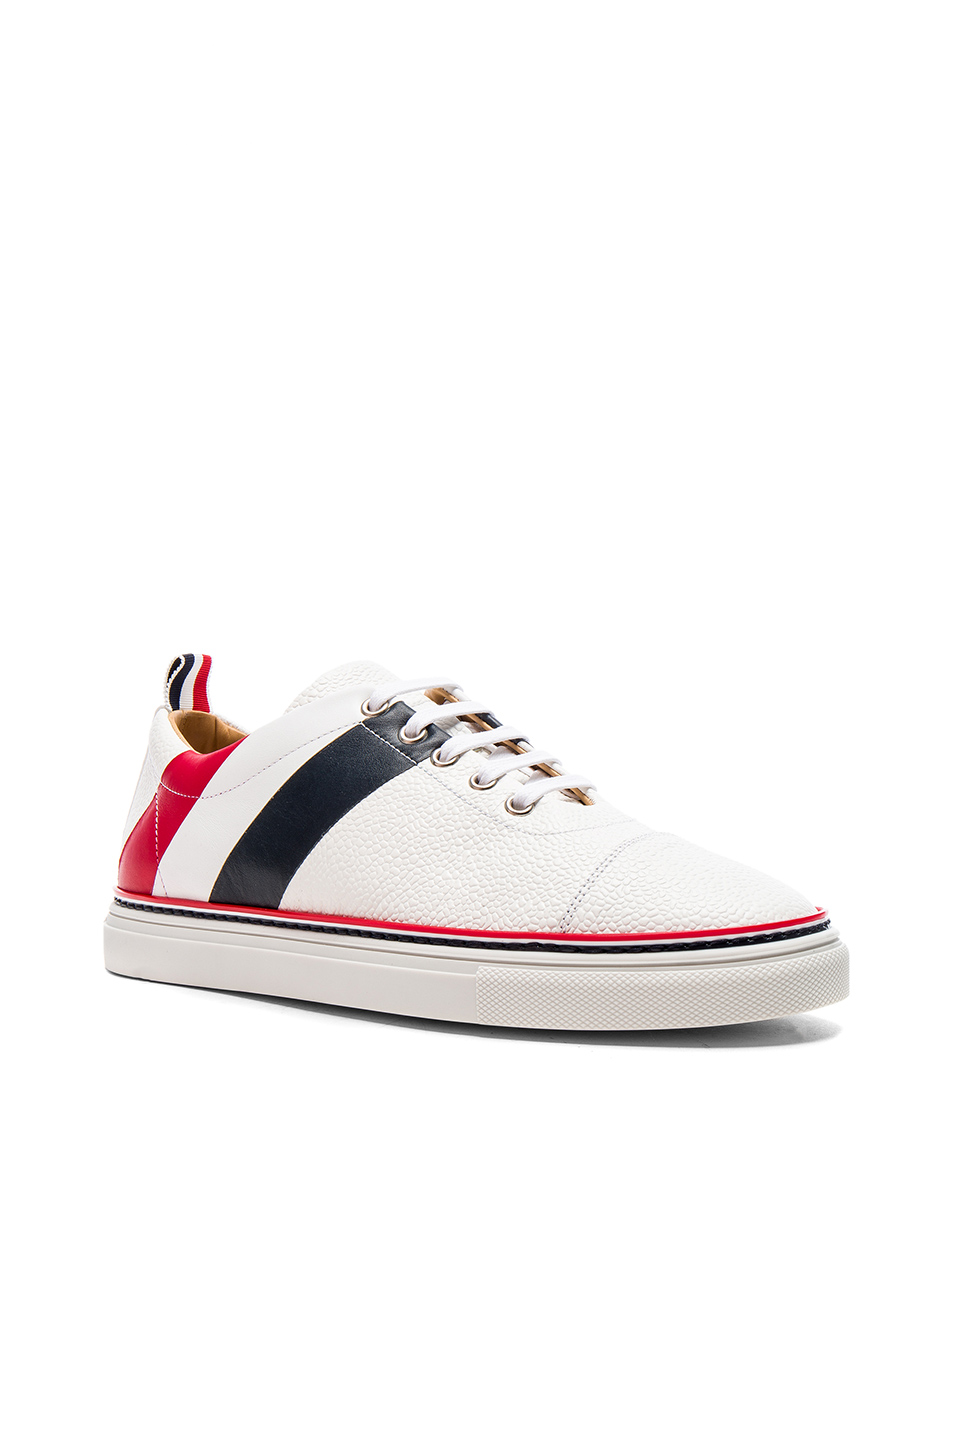 Thom Browne Pebble Grain & Calf Leather Straight Toe Cap Sneakers in White